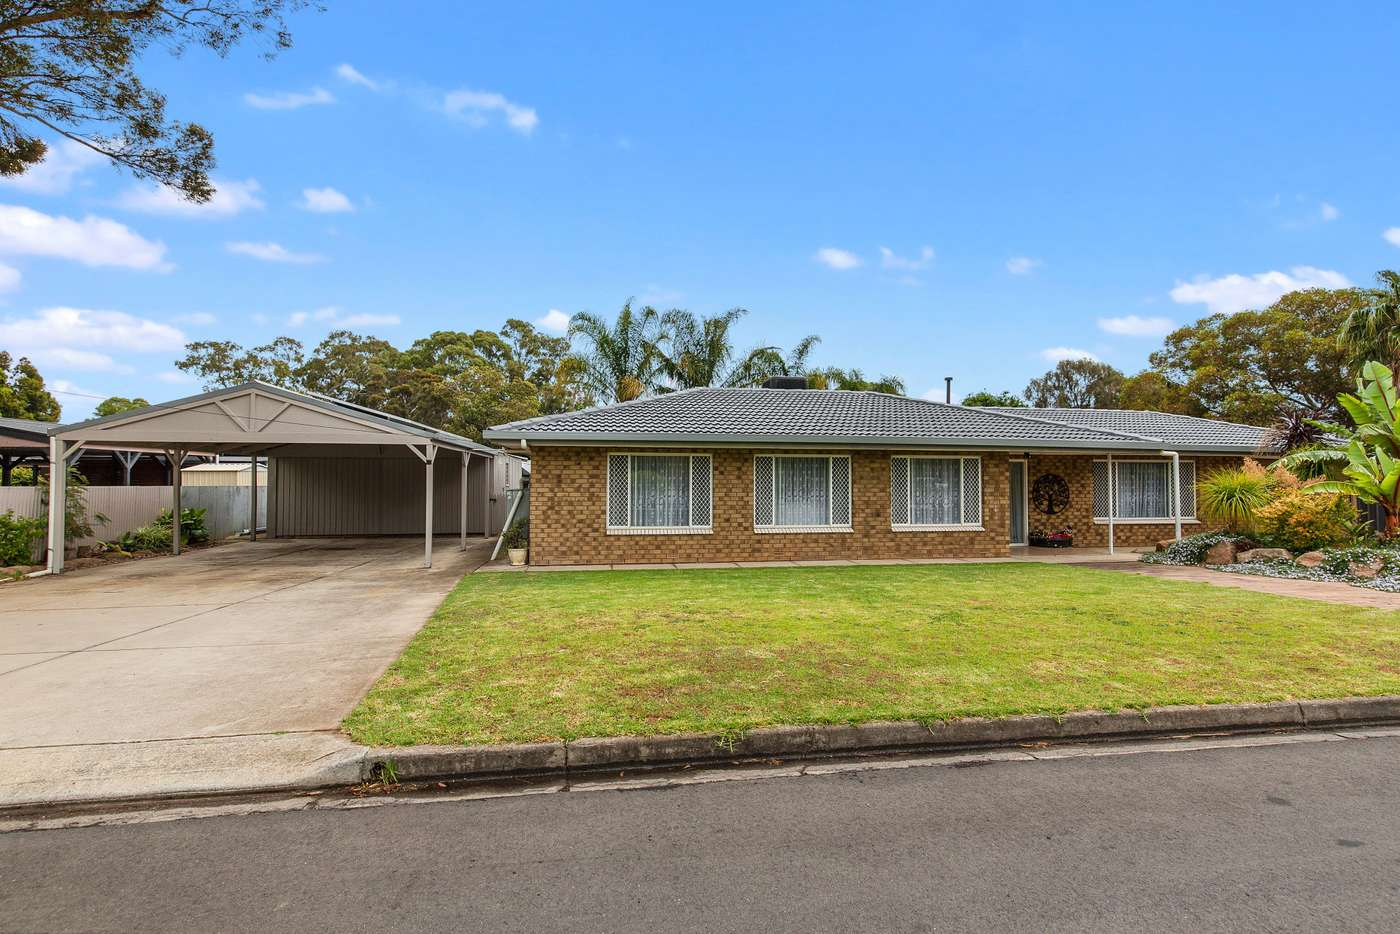 Main view of Homely house listing, 2 Vincent Crescent, Morphett Vale SA 5162